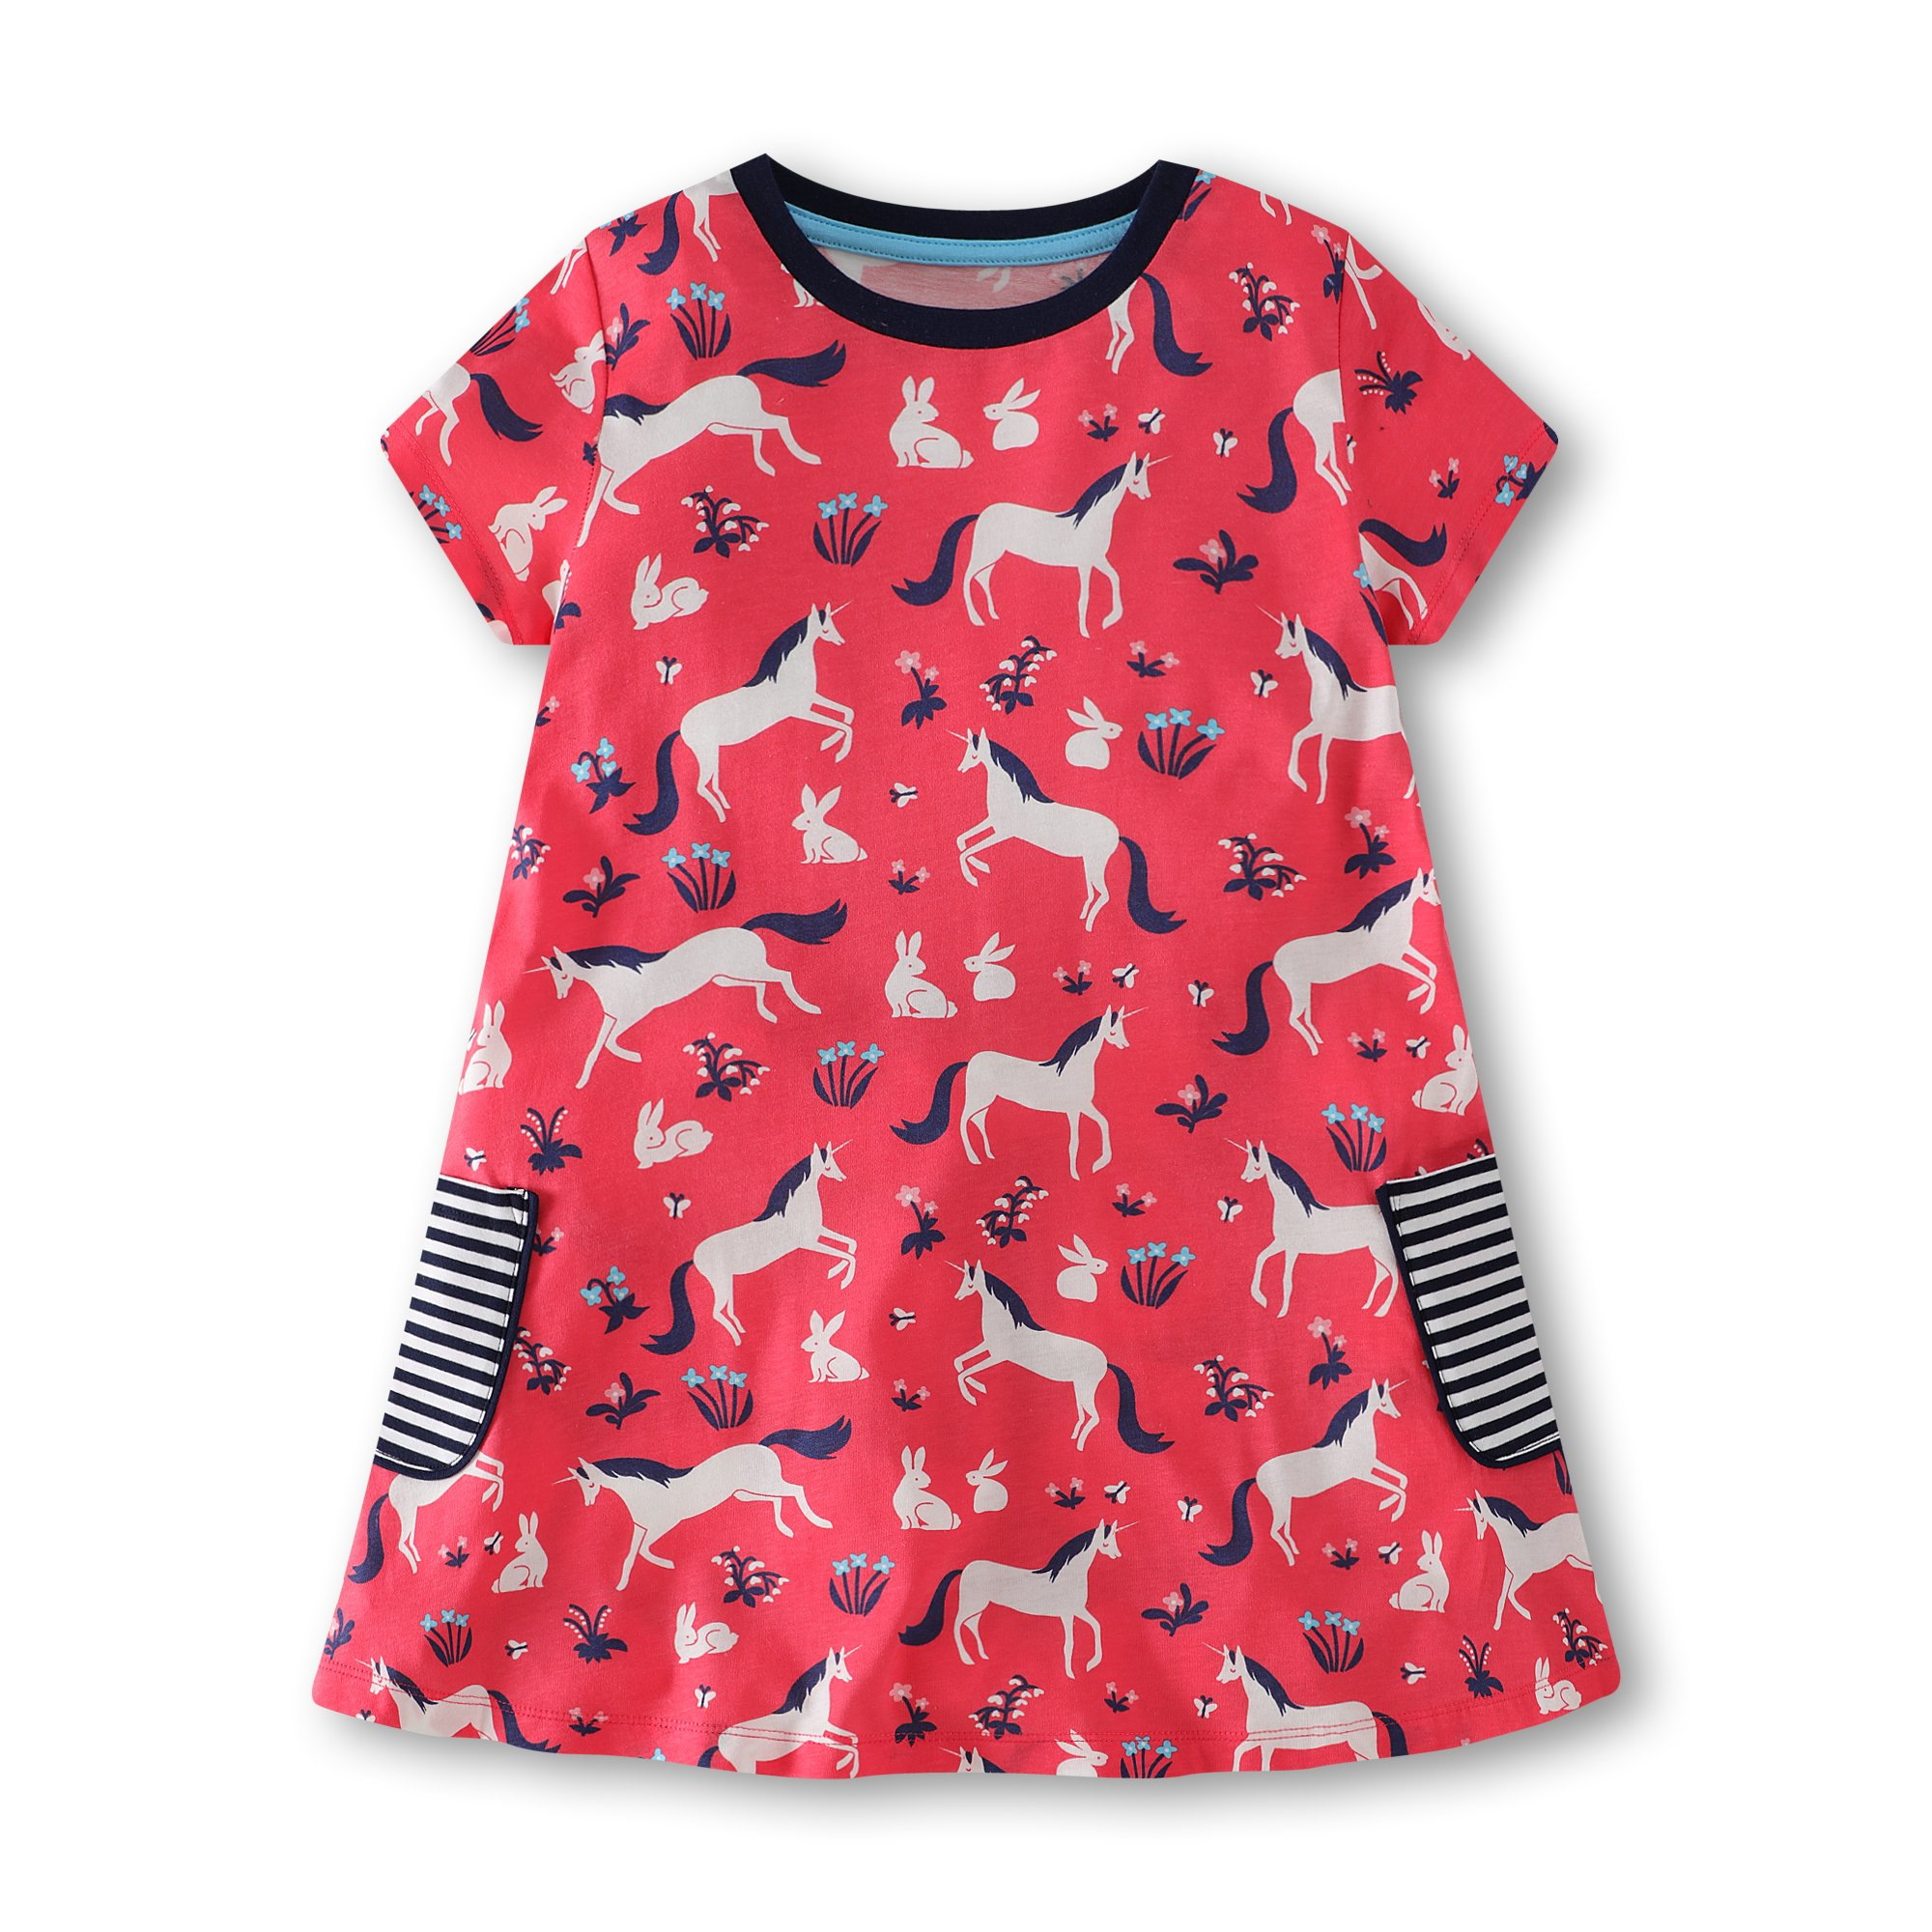 Gorboig Girls Summer Cotton Short Sleeve Cute Prints with Pockets Dress for Toddler(Red/2-3Y)